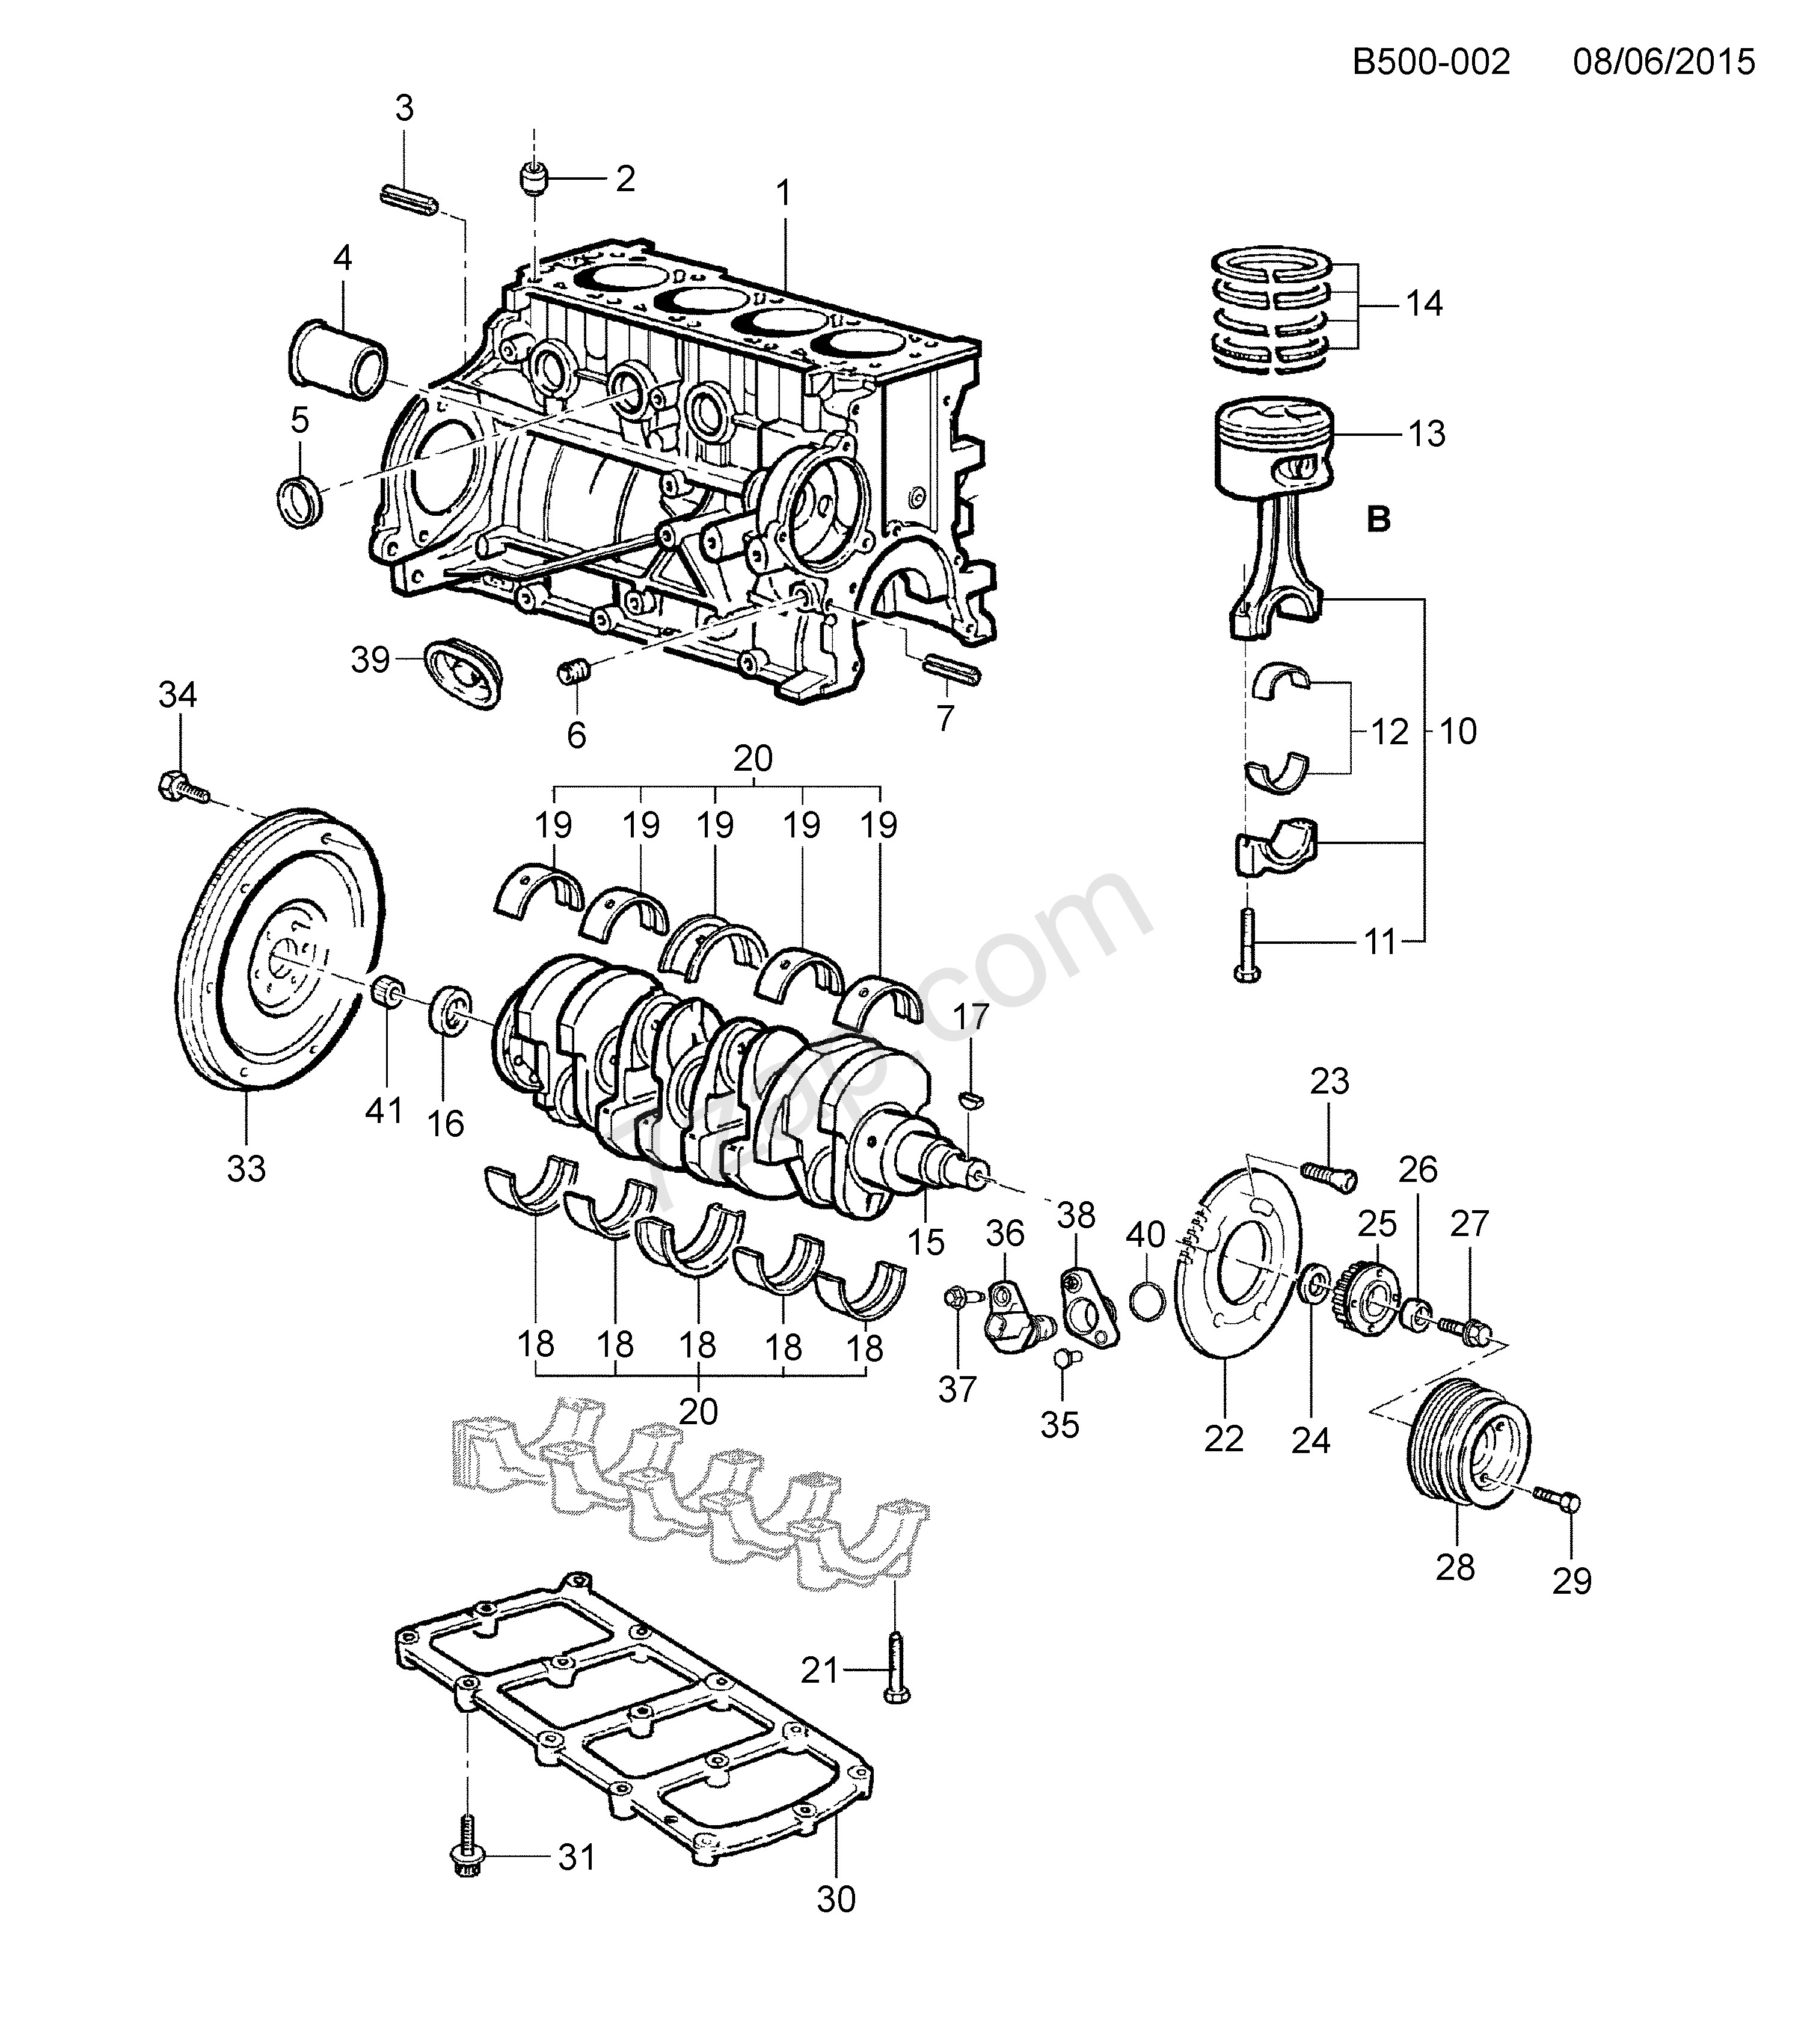 chevy s10 parts diagram 4l60e parts diagram wiring diagram